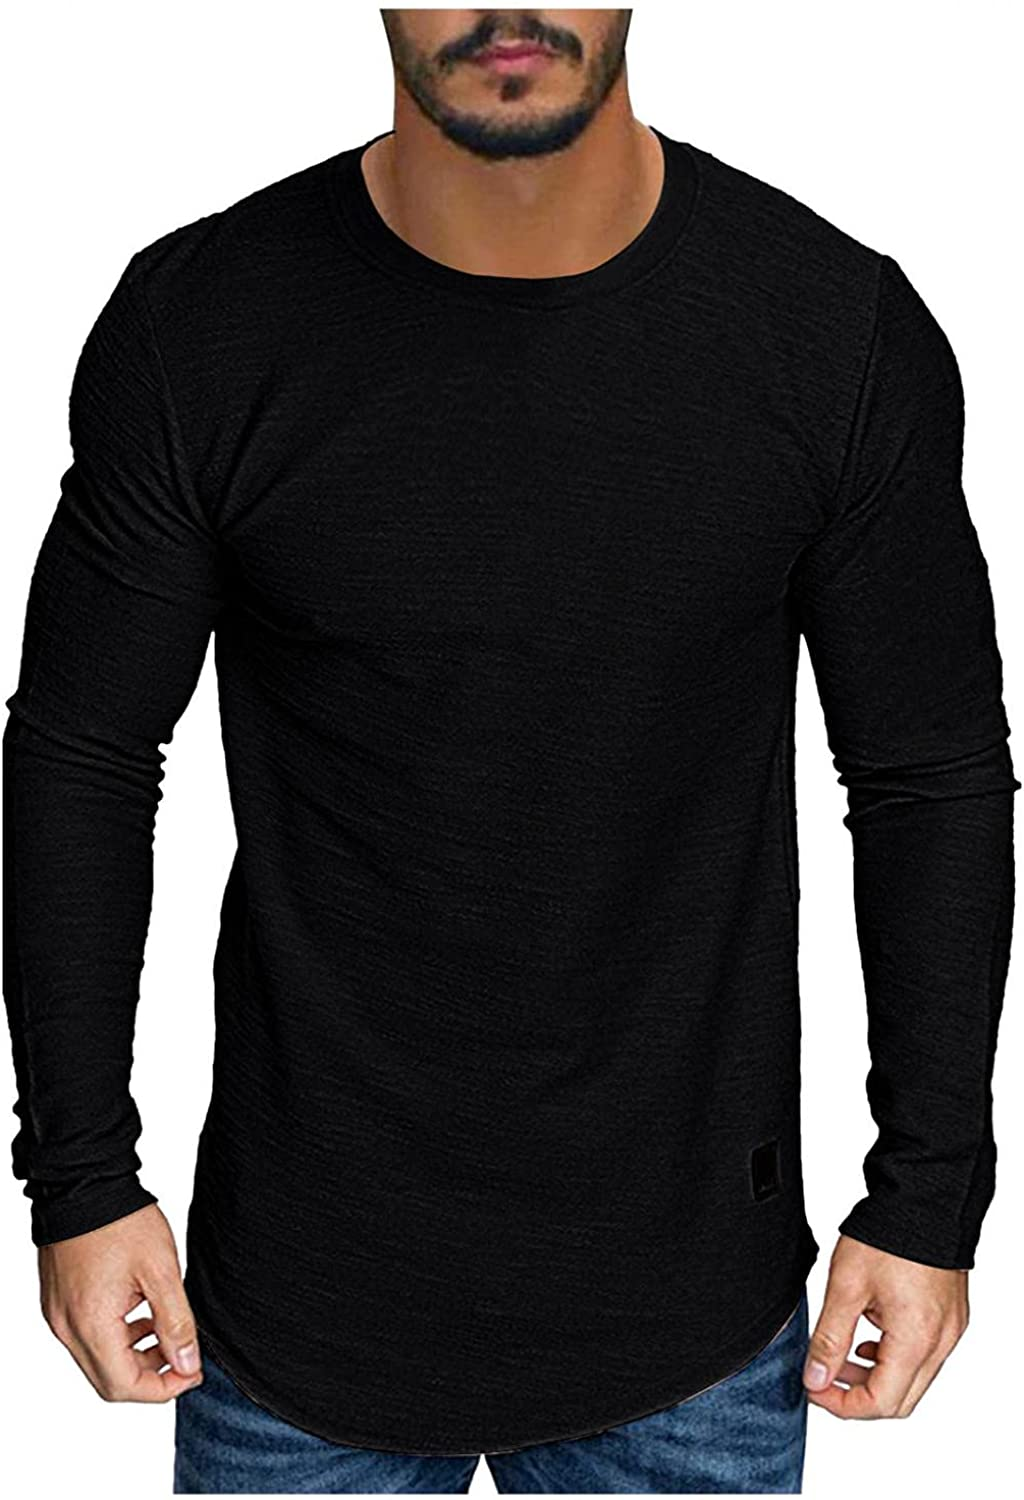 Mens Shirts Men's Casual Basic Dark Solid Color Jacket T-shirt Long Sleeve Tee Shirts for Men Top Blouse Polo Shirts for Men